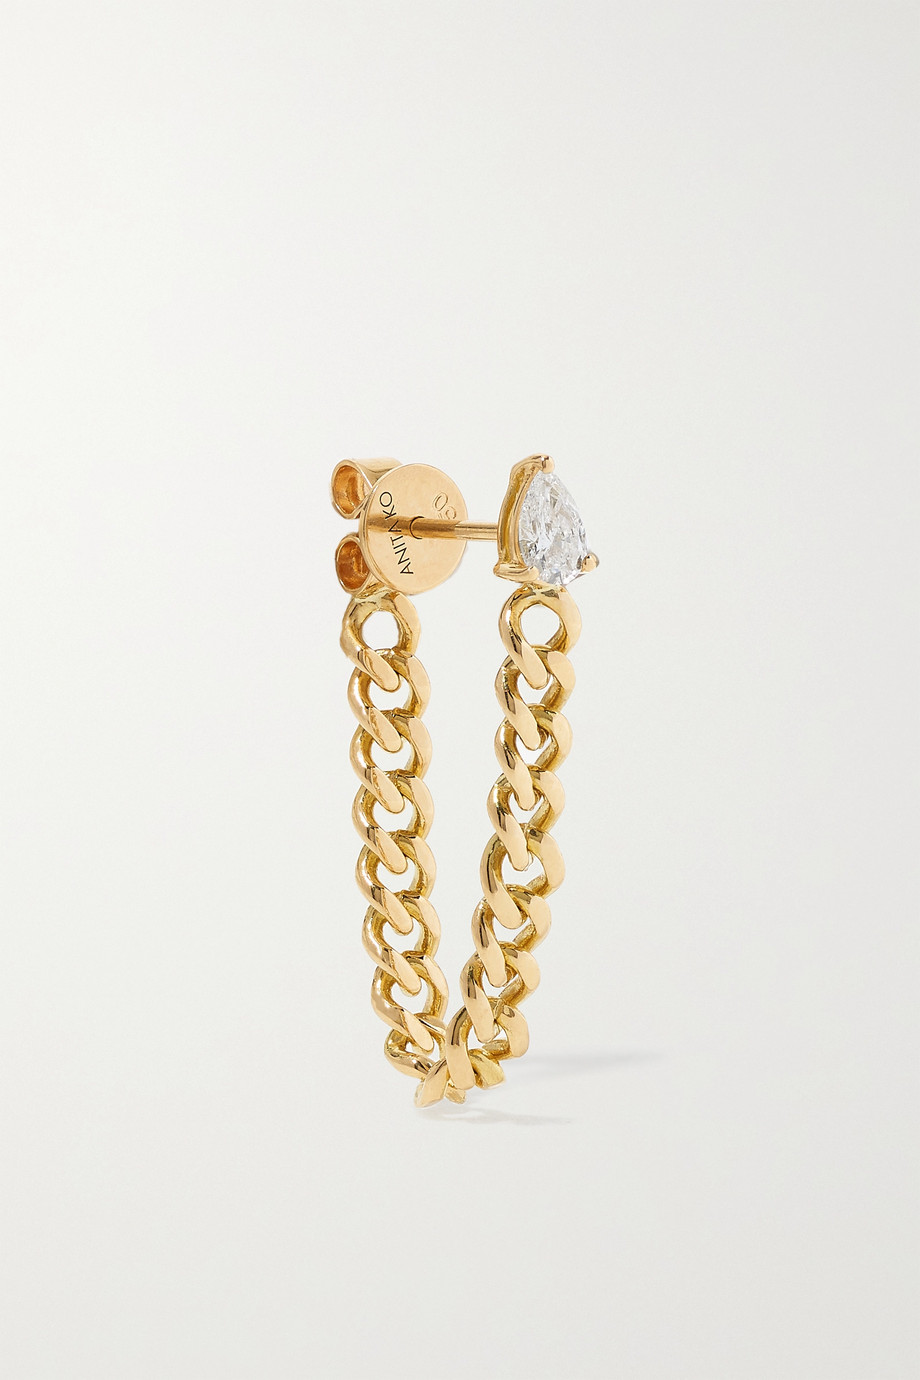 ANITA KO 18-karat gold diamond earring